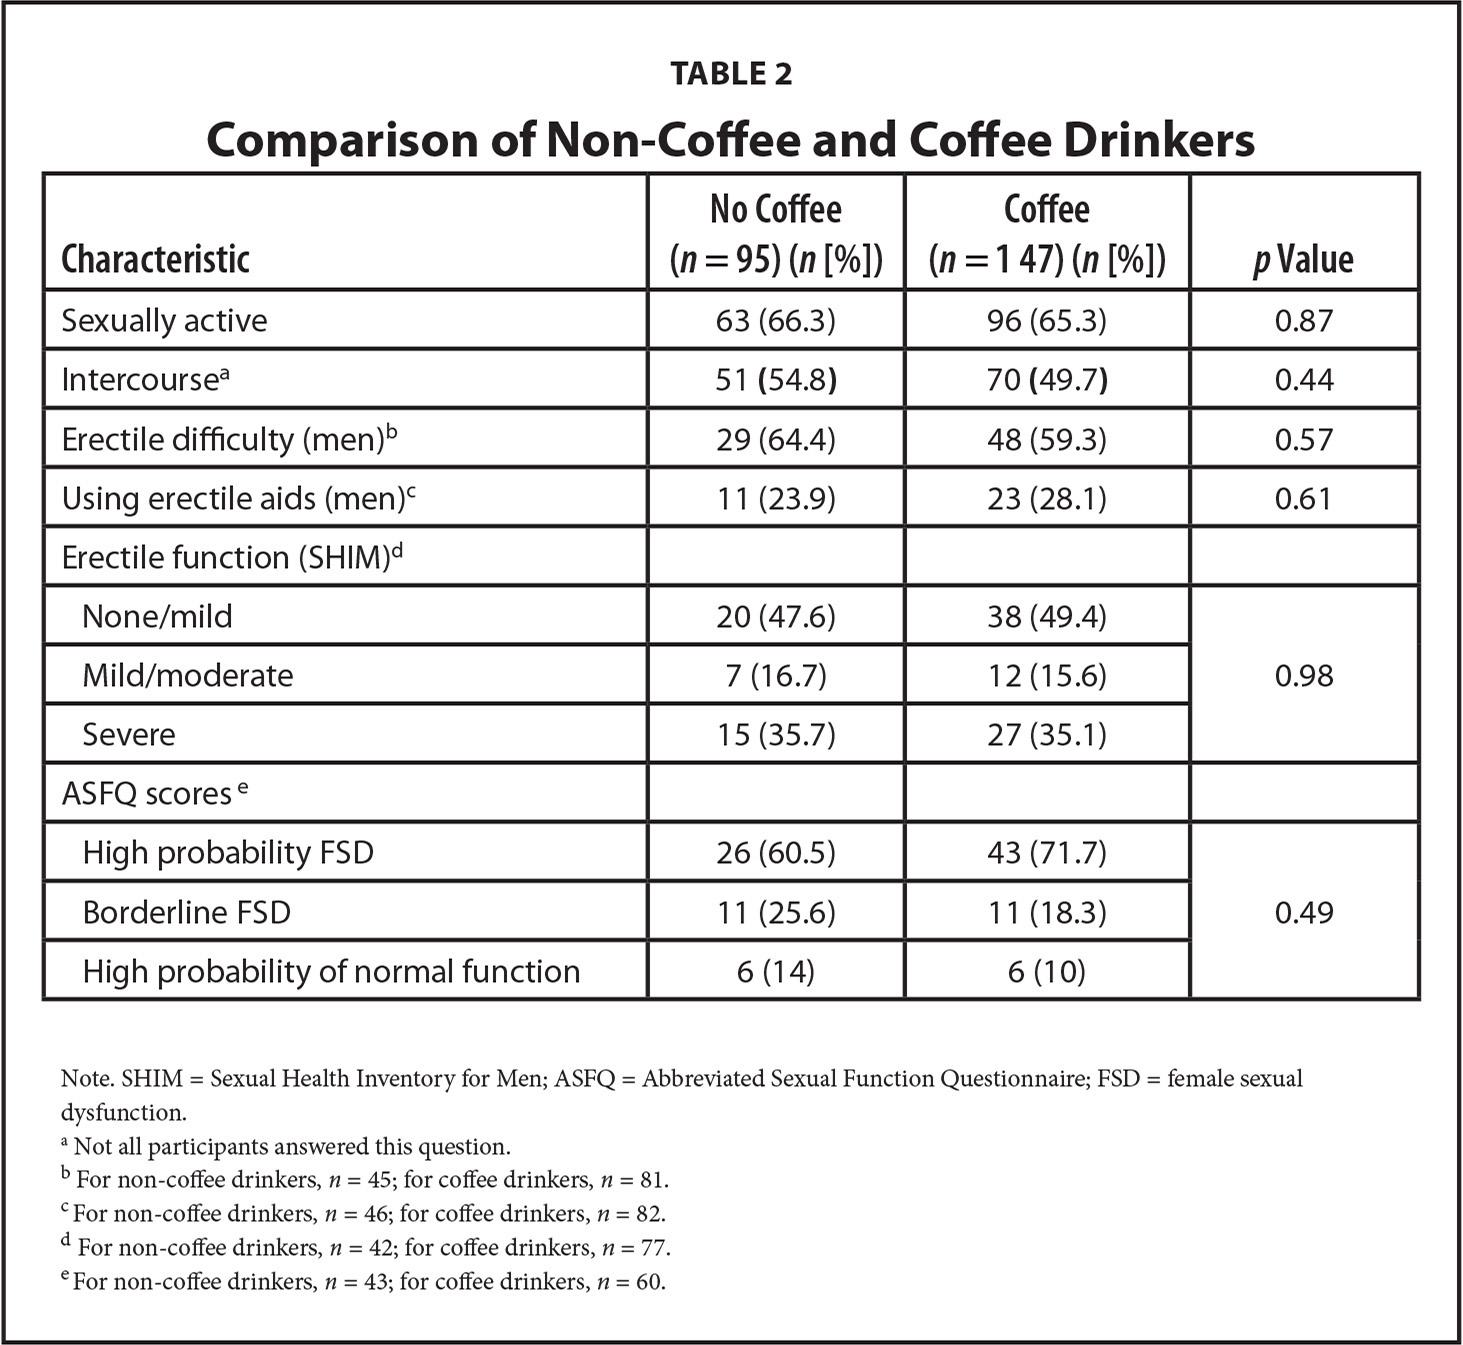 Comparison of Non-Coffee and Coffee Drinkers